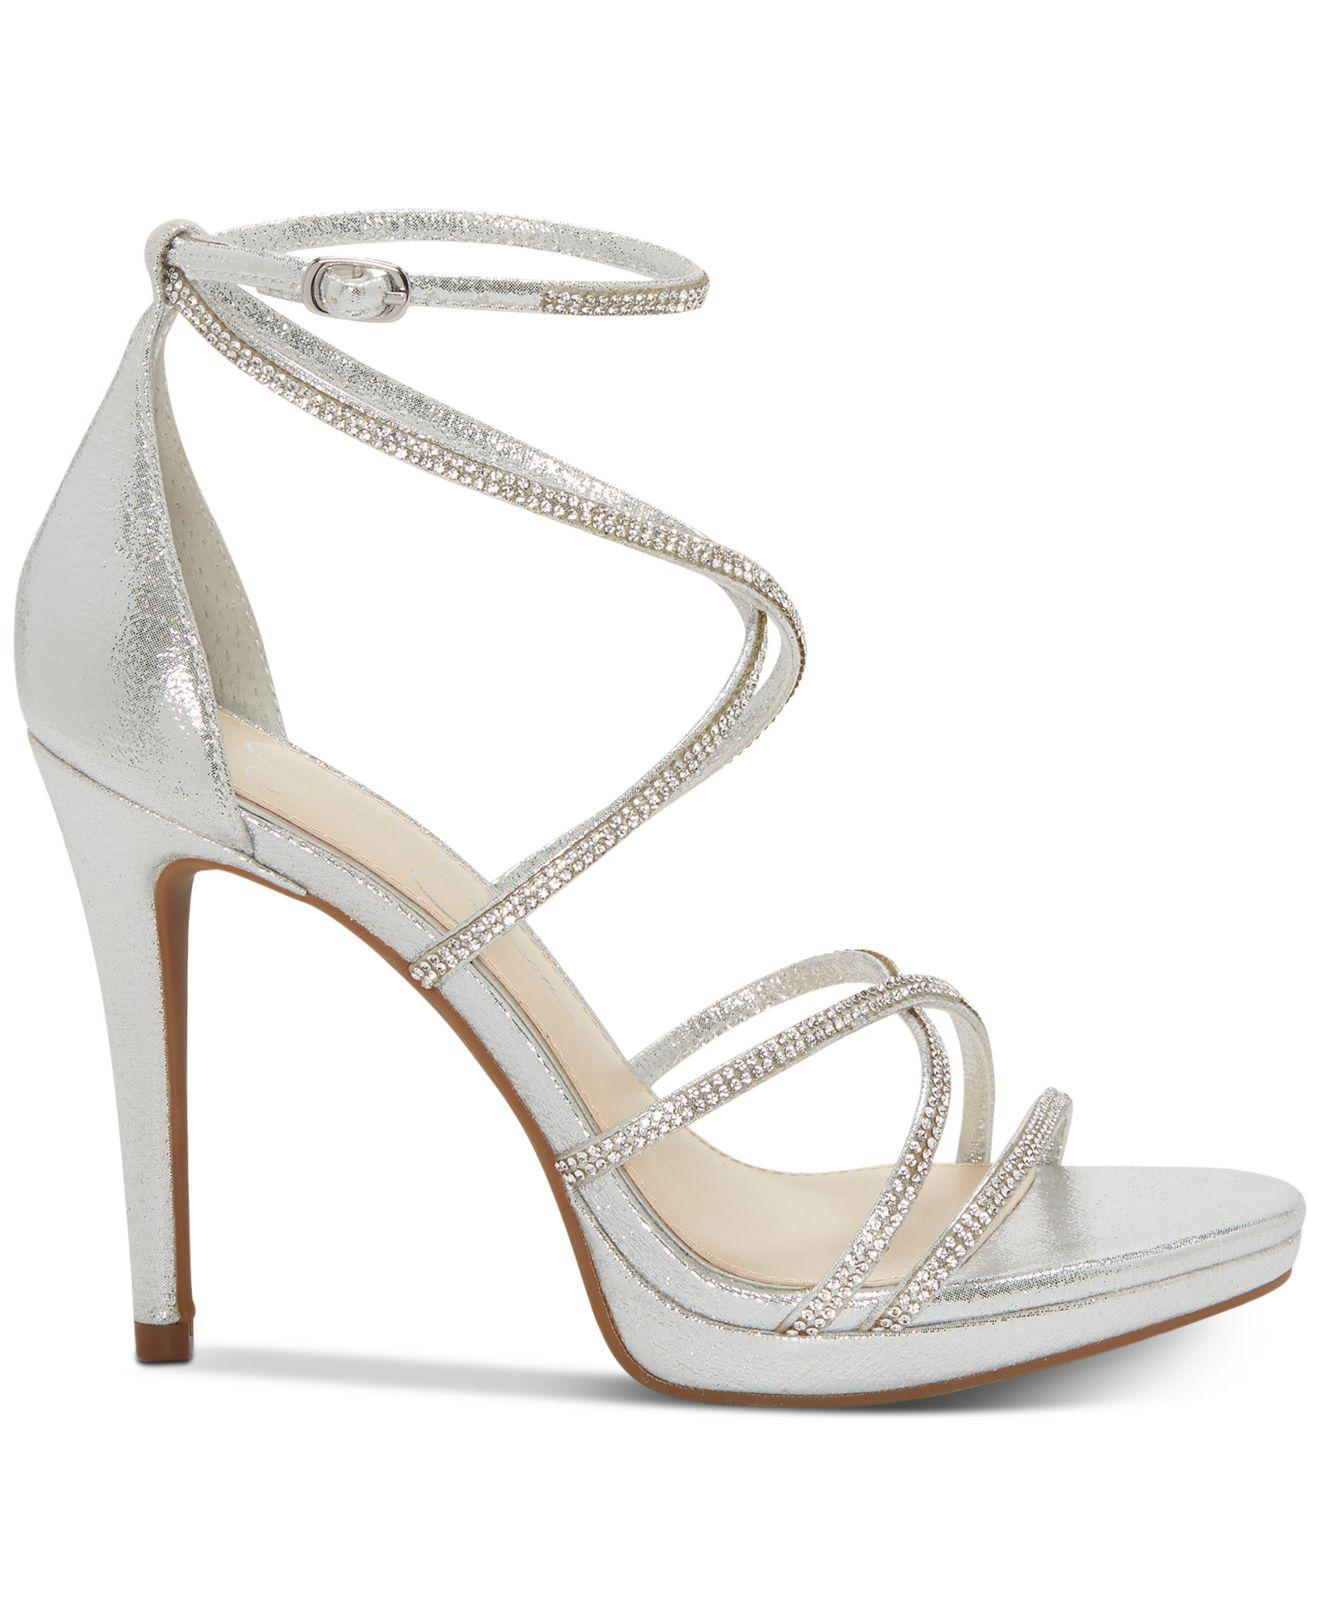 c8d78b24f99 Lyst - Jessica Simpson Jaeya Strappy Dress Sandals